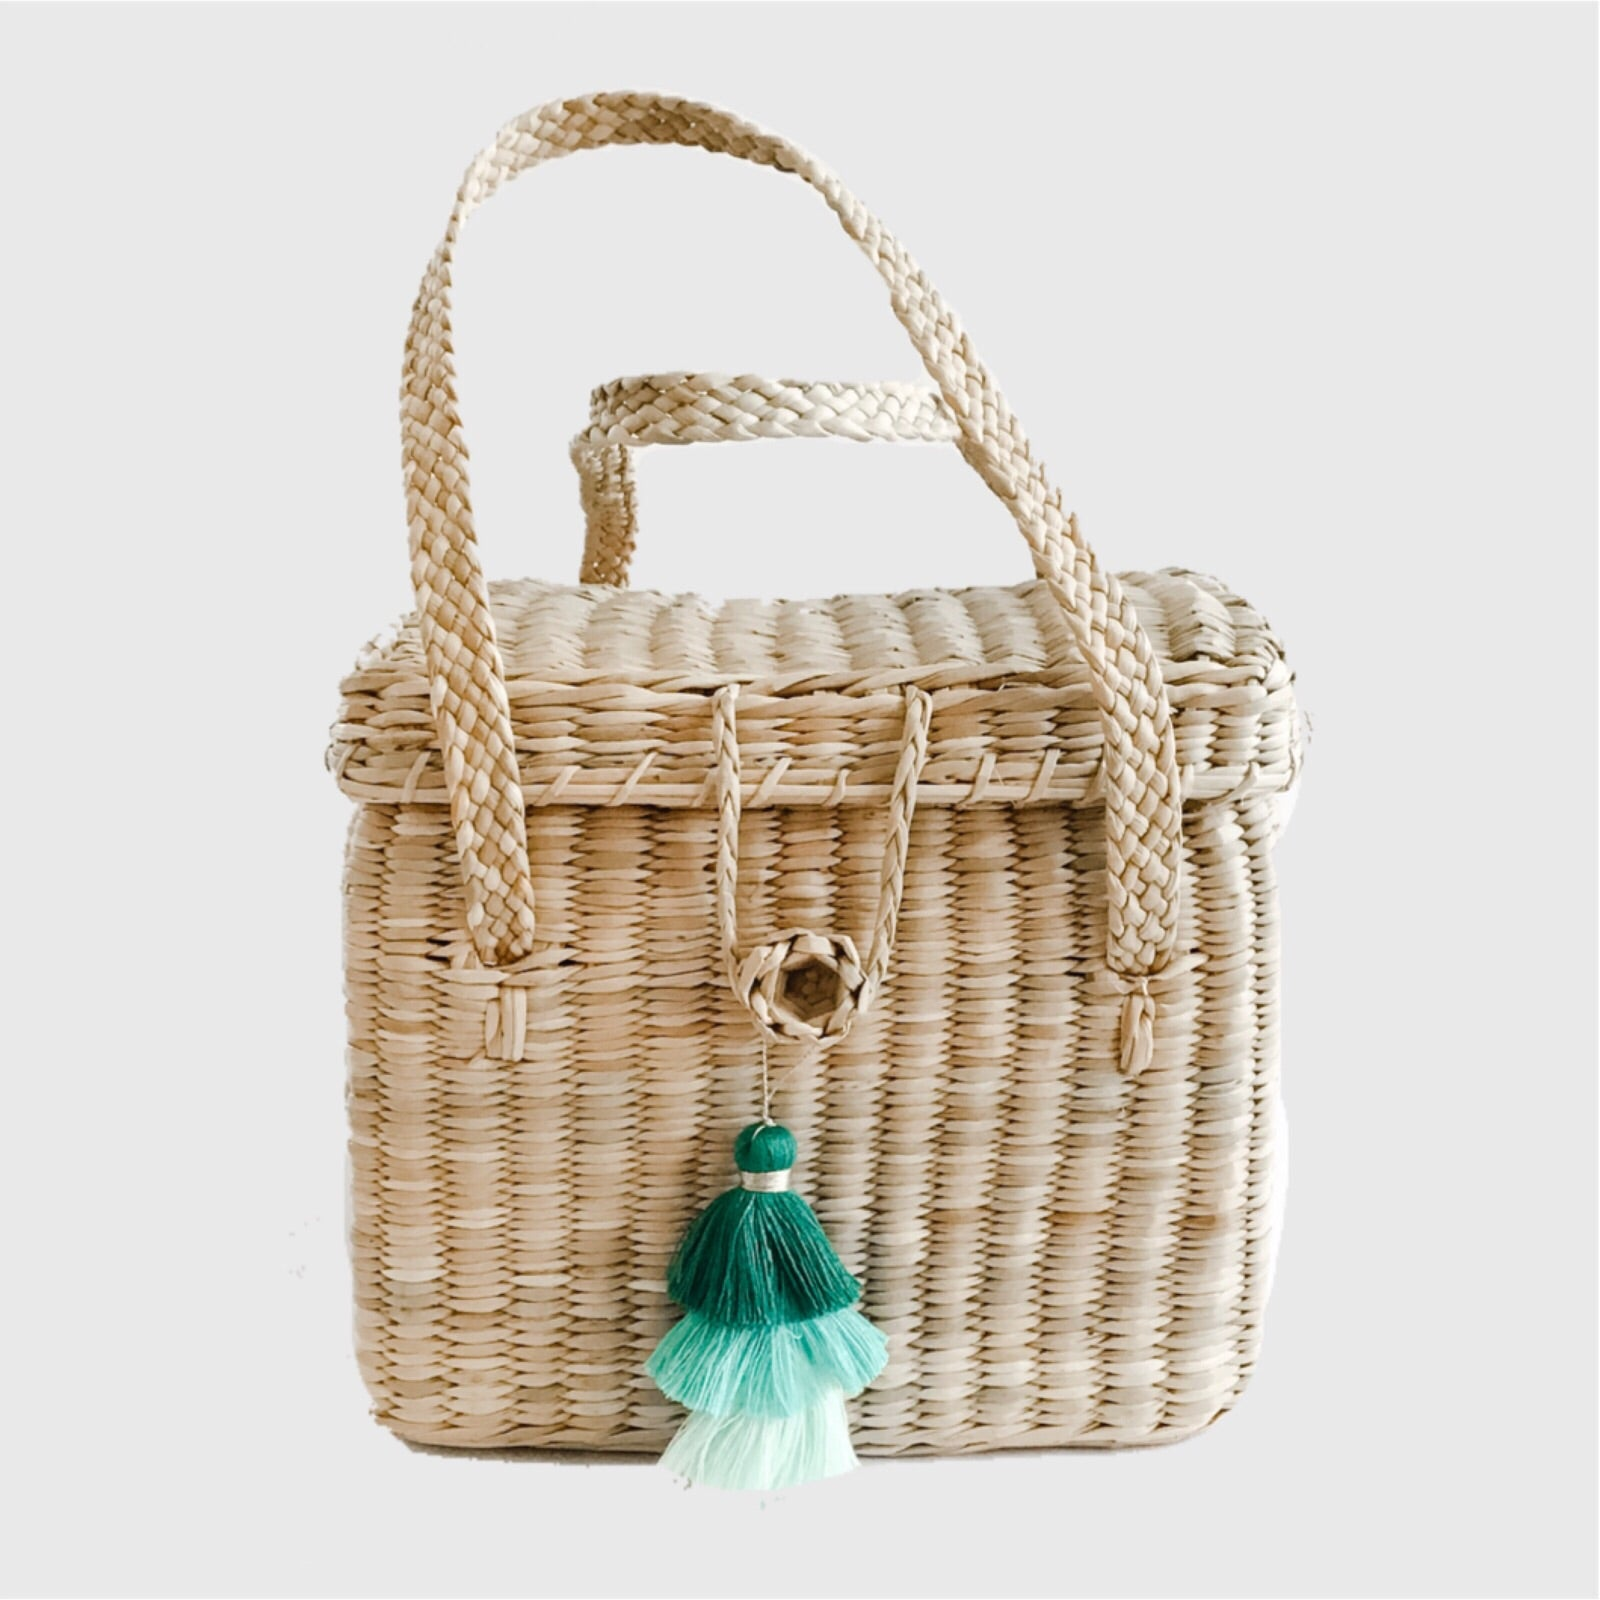 Straw picnic basket